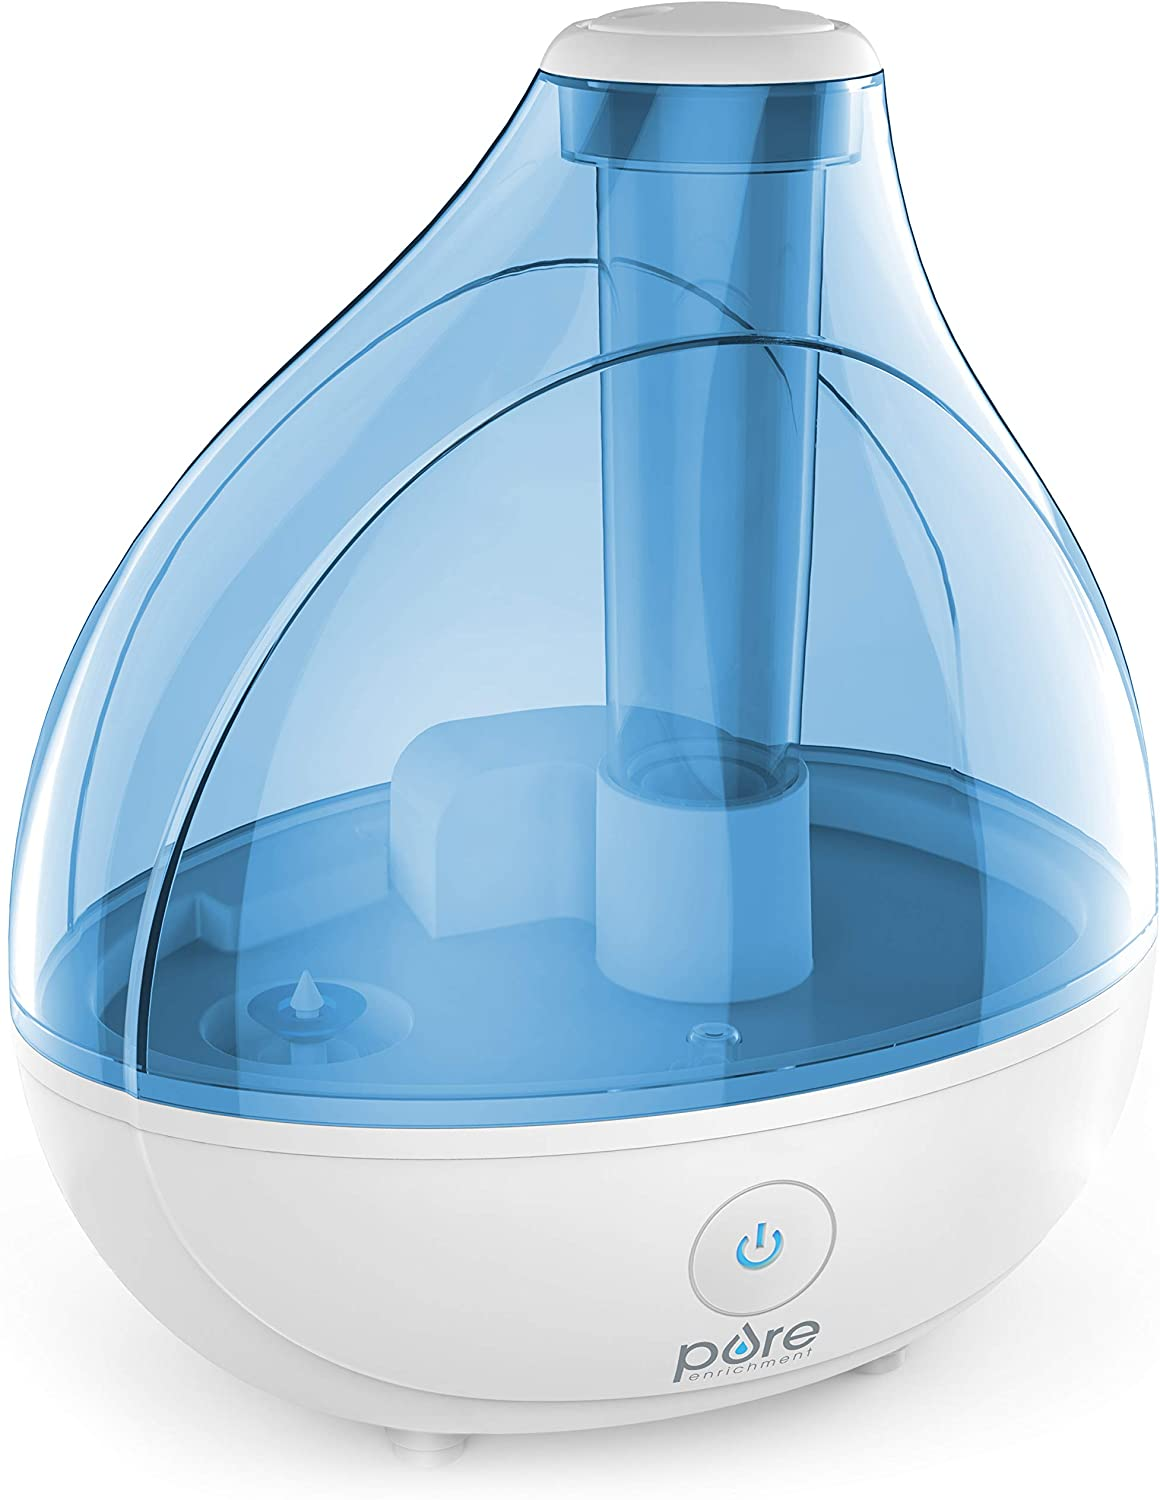 Mist Air Ultrasonic Cool Mist Humidifier by Pure Enrichment